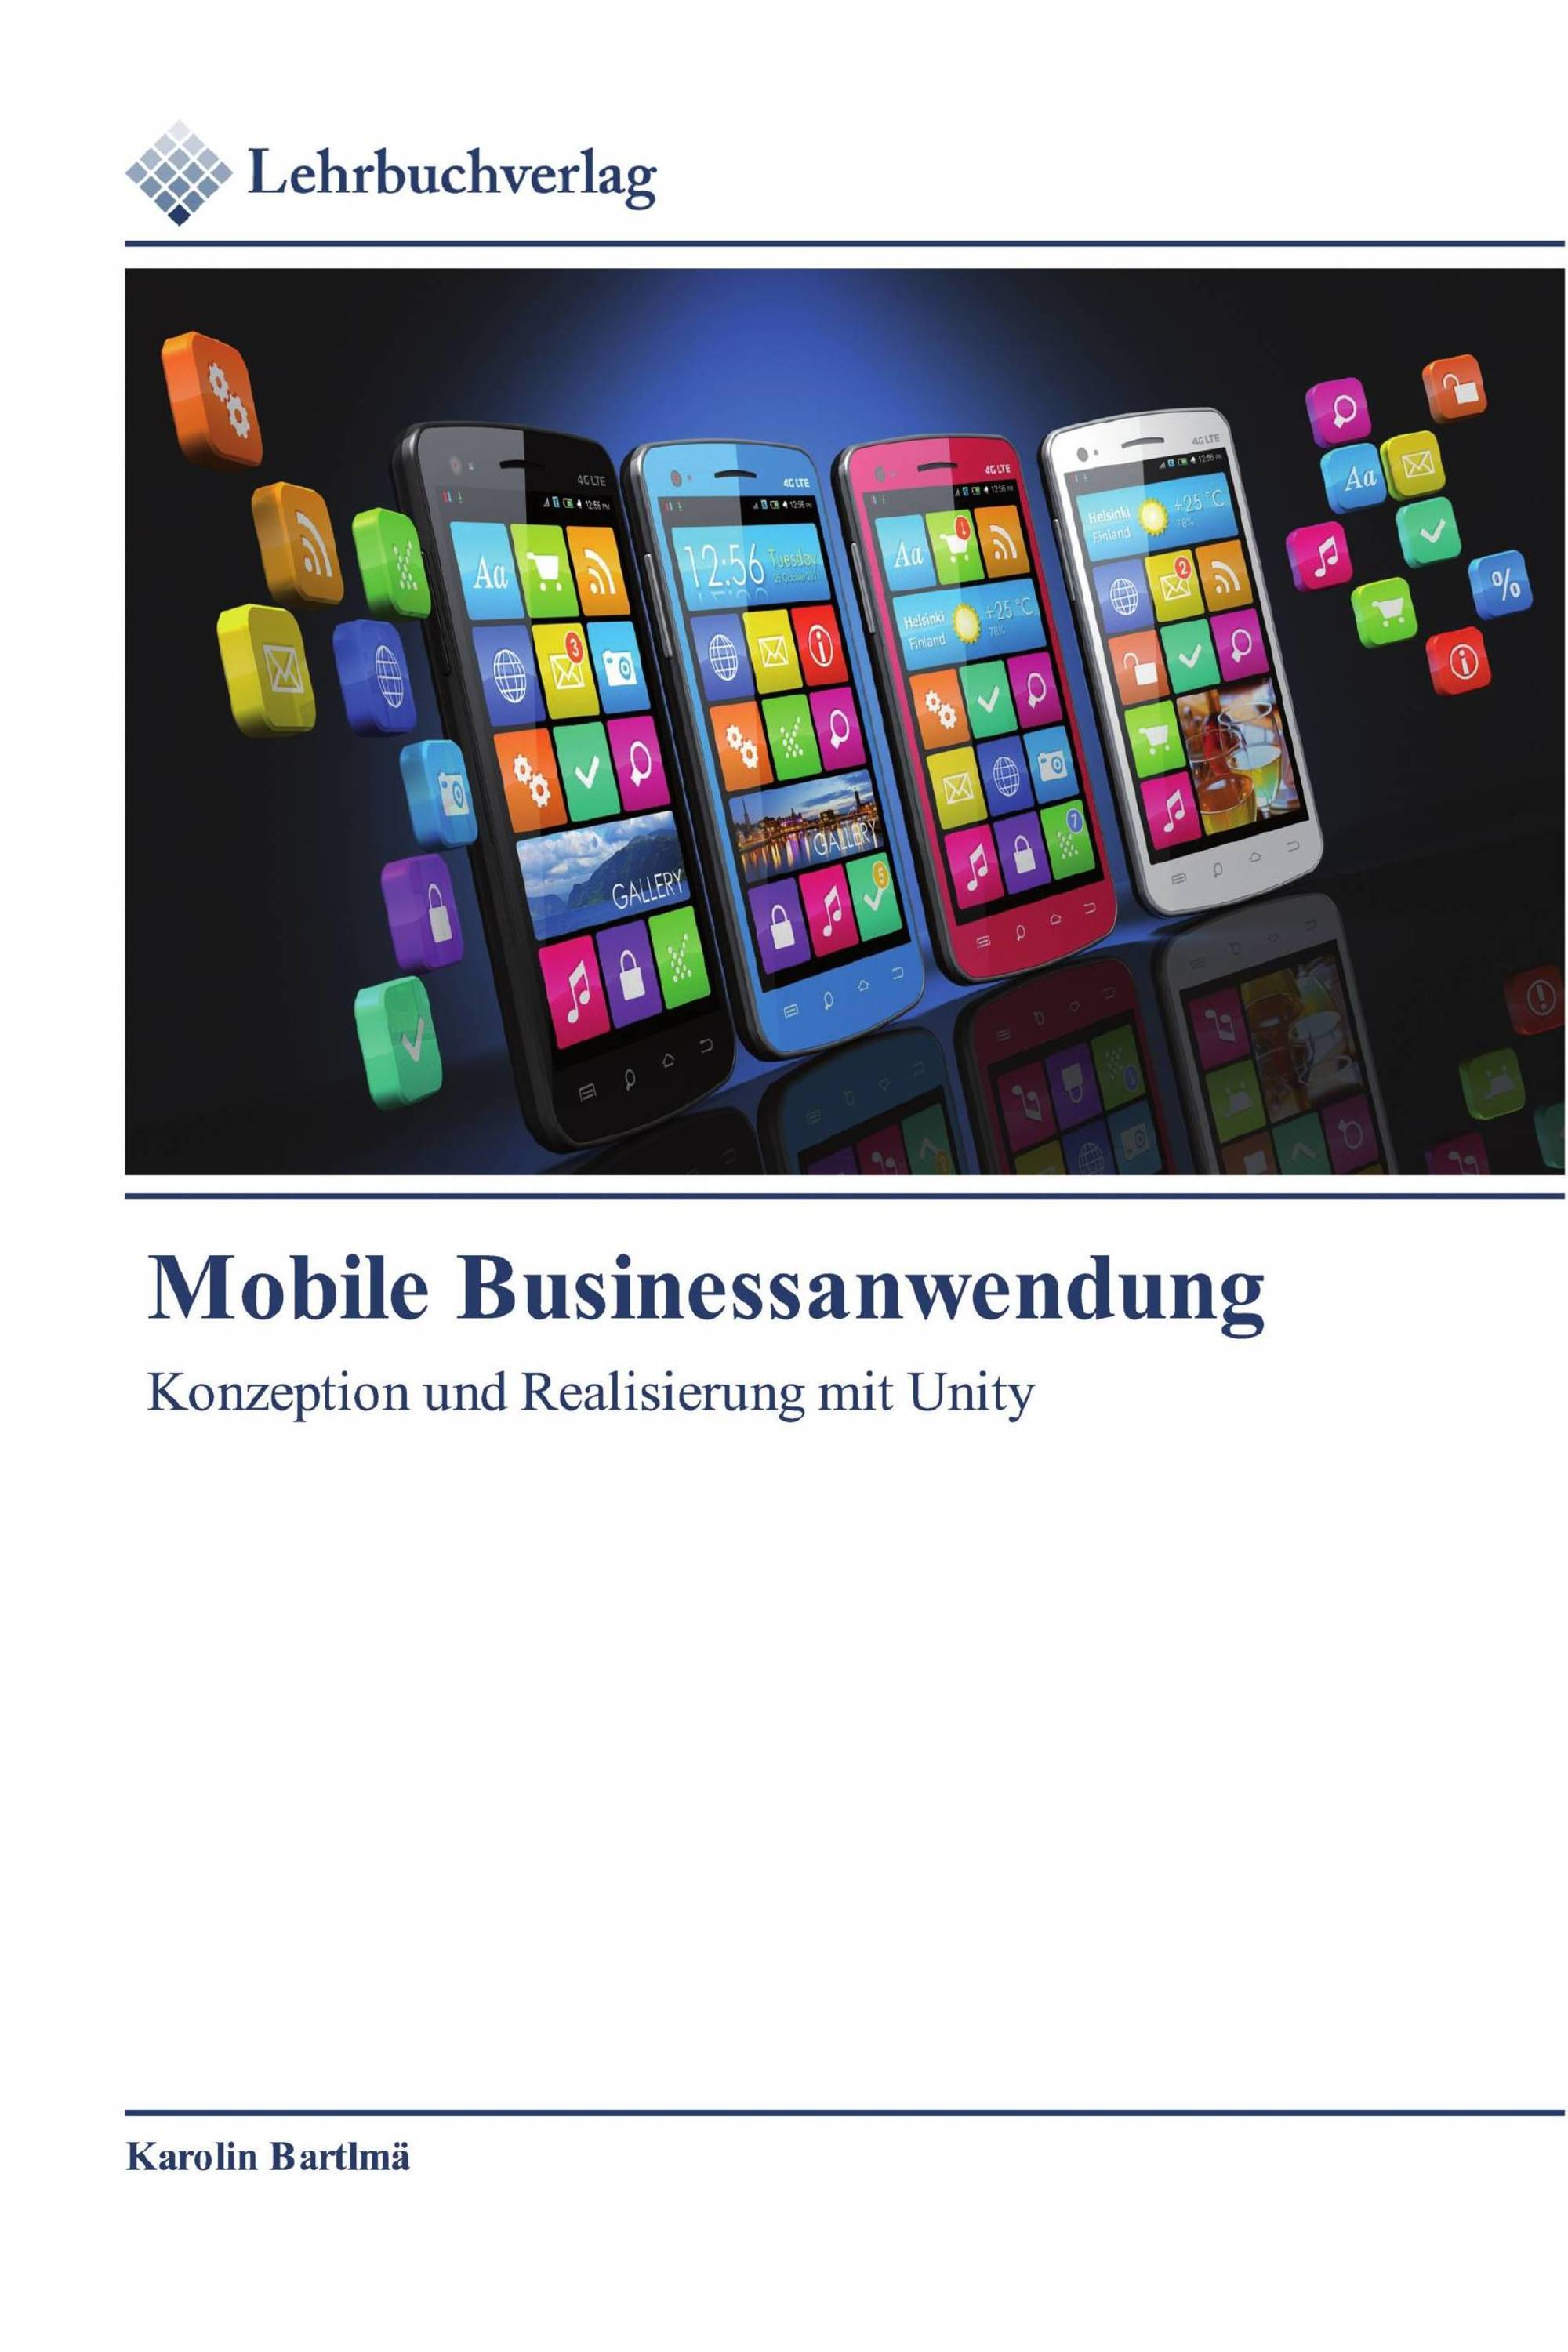 Mobile Businessanwendung